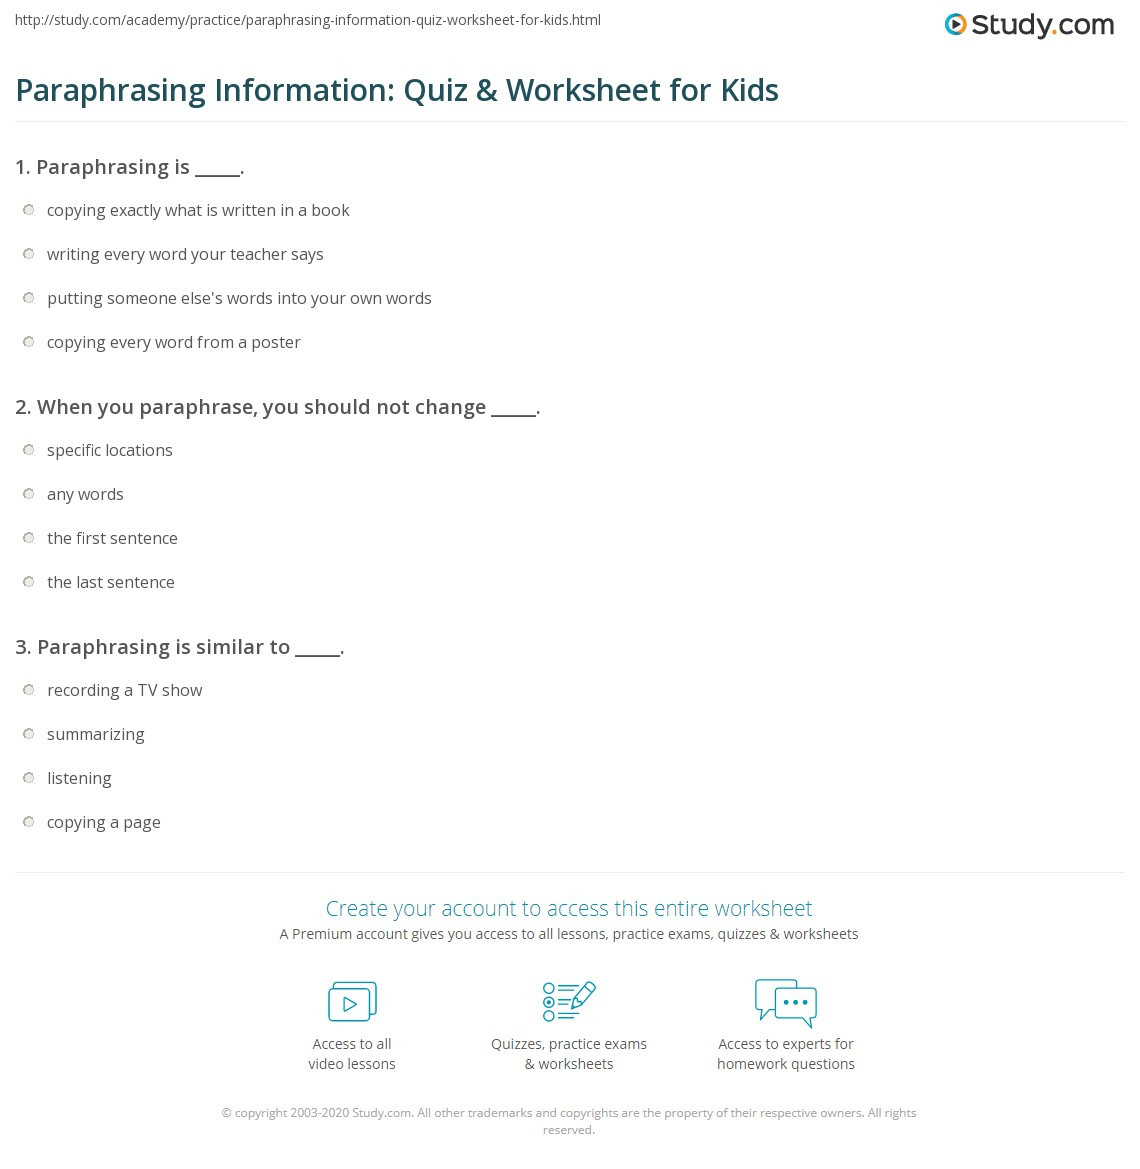 Paraphrasing Worksheet Middle School Paraphrasing Information Quiz & Worksheet for Kids